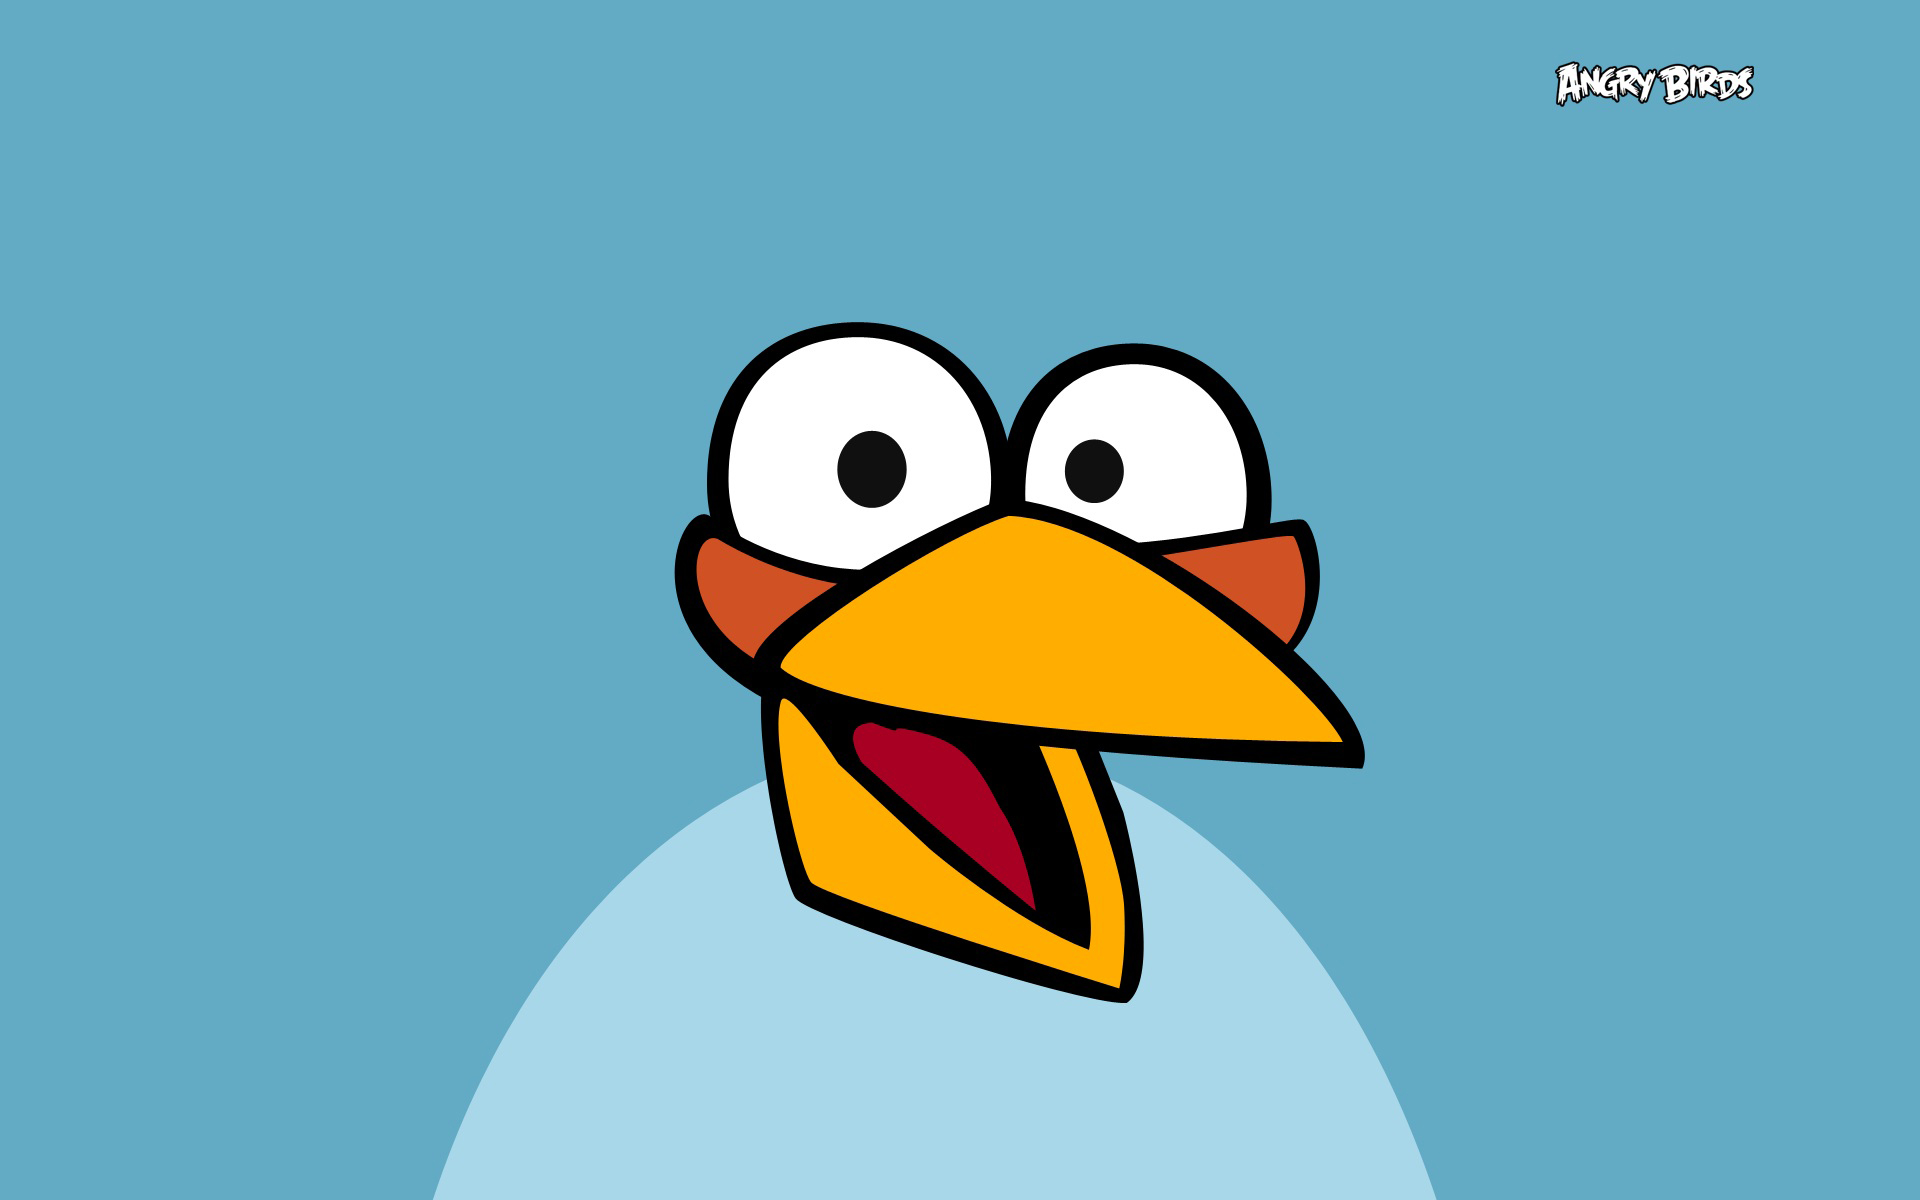 Angry Birds images blue HD wallpaper and background photos